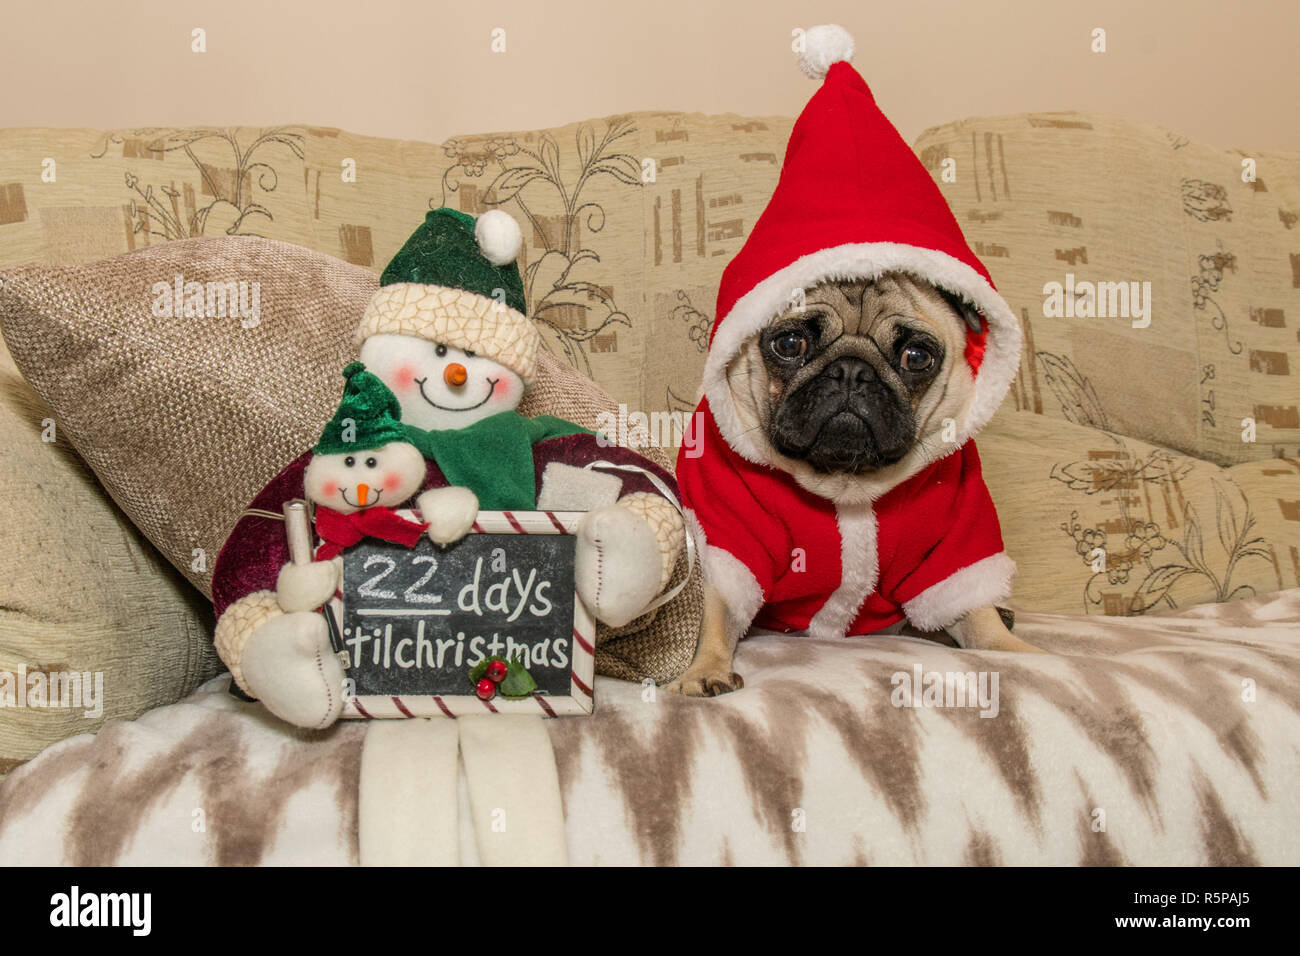 Mousehole, Cornwall, UK. 2nd December 2018. Titan the pug pup looking suitably enthusiastic about the fact that the run upto Christmas has started in earnest now, as of Monday there are only 22 days left to go until the big day. Credit: Simon Maycock/Alamy Live News - Stock Image